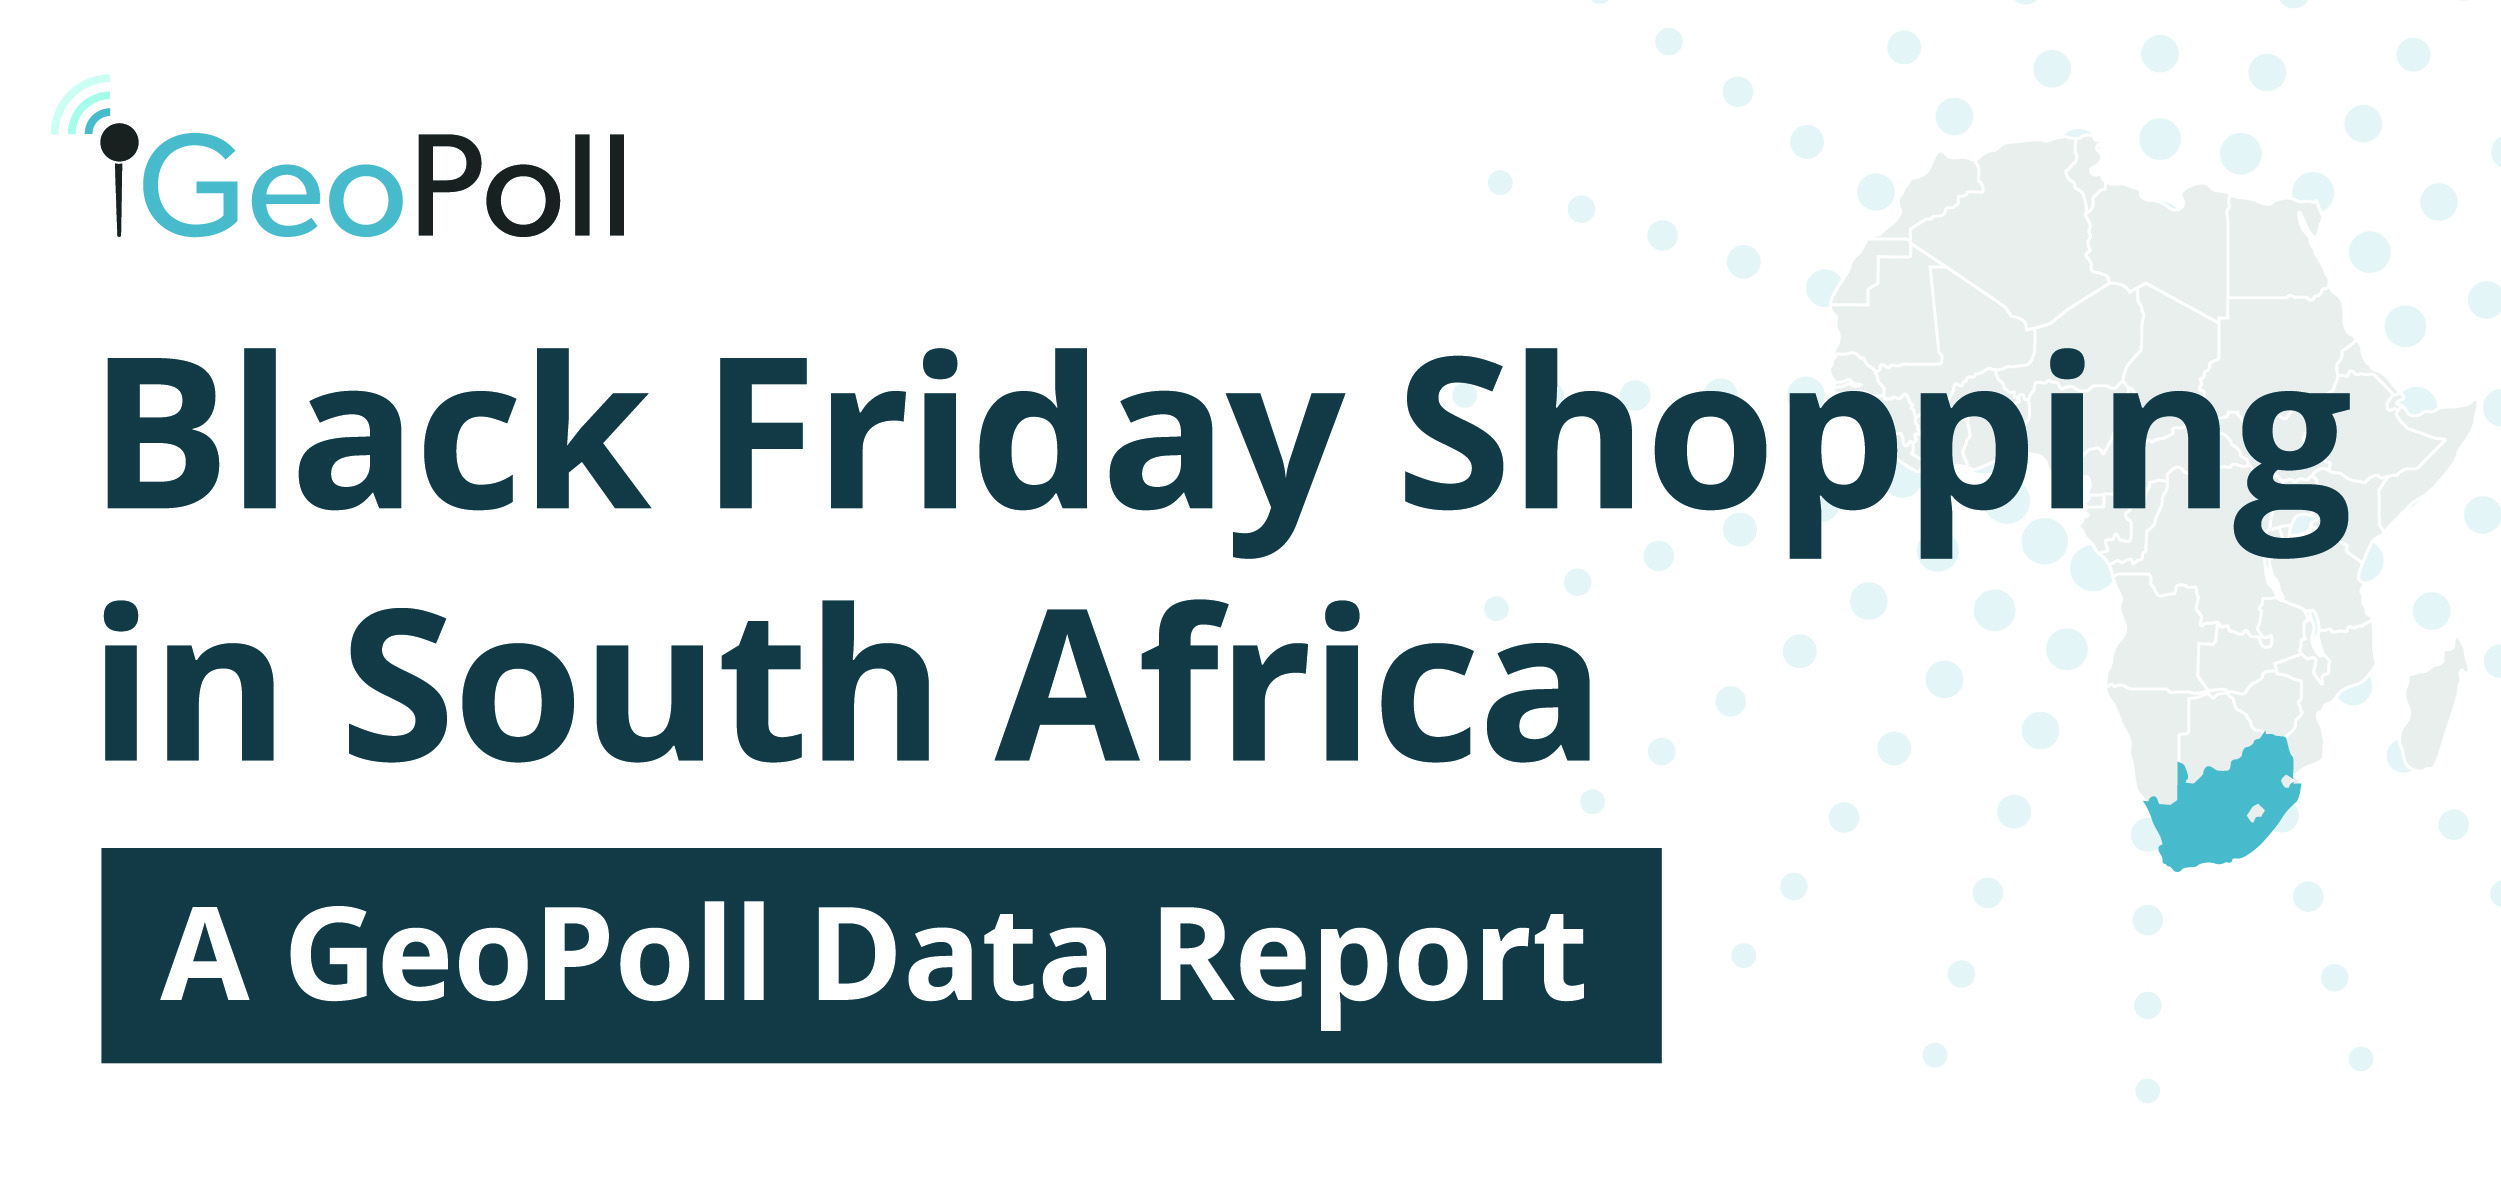 South Africa Black Friday Study 2019